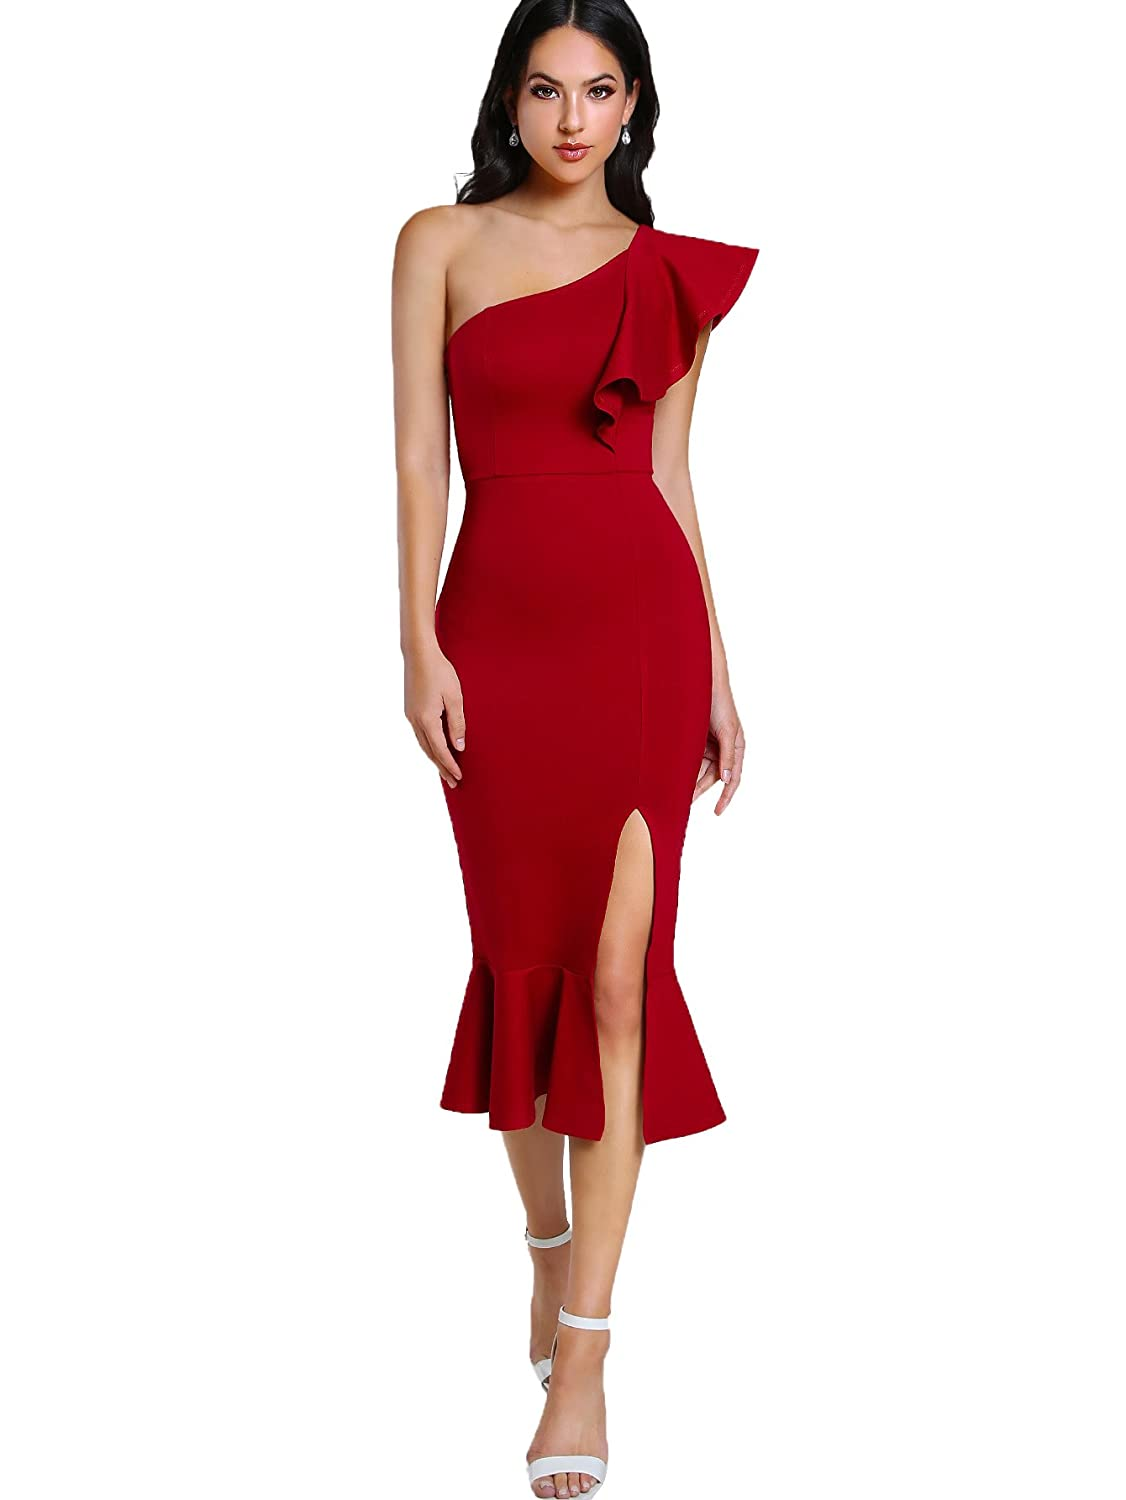 d5eaff2805 Floerns Women's Ruffle One Shoulder Split Midi Party Bodycon Dress at  Amazon Women's Clothing store: